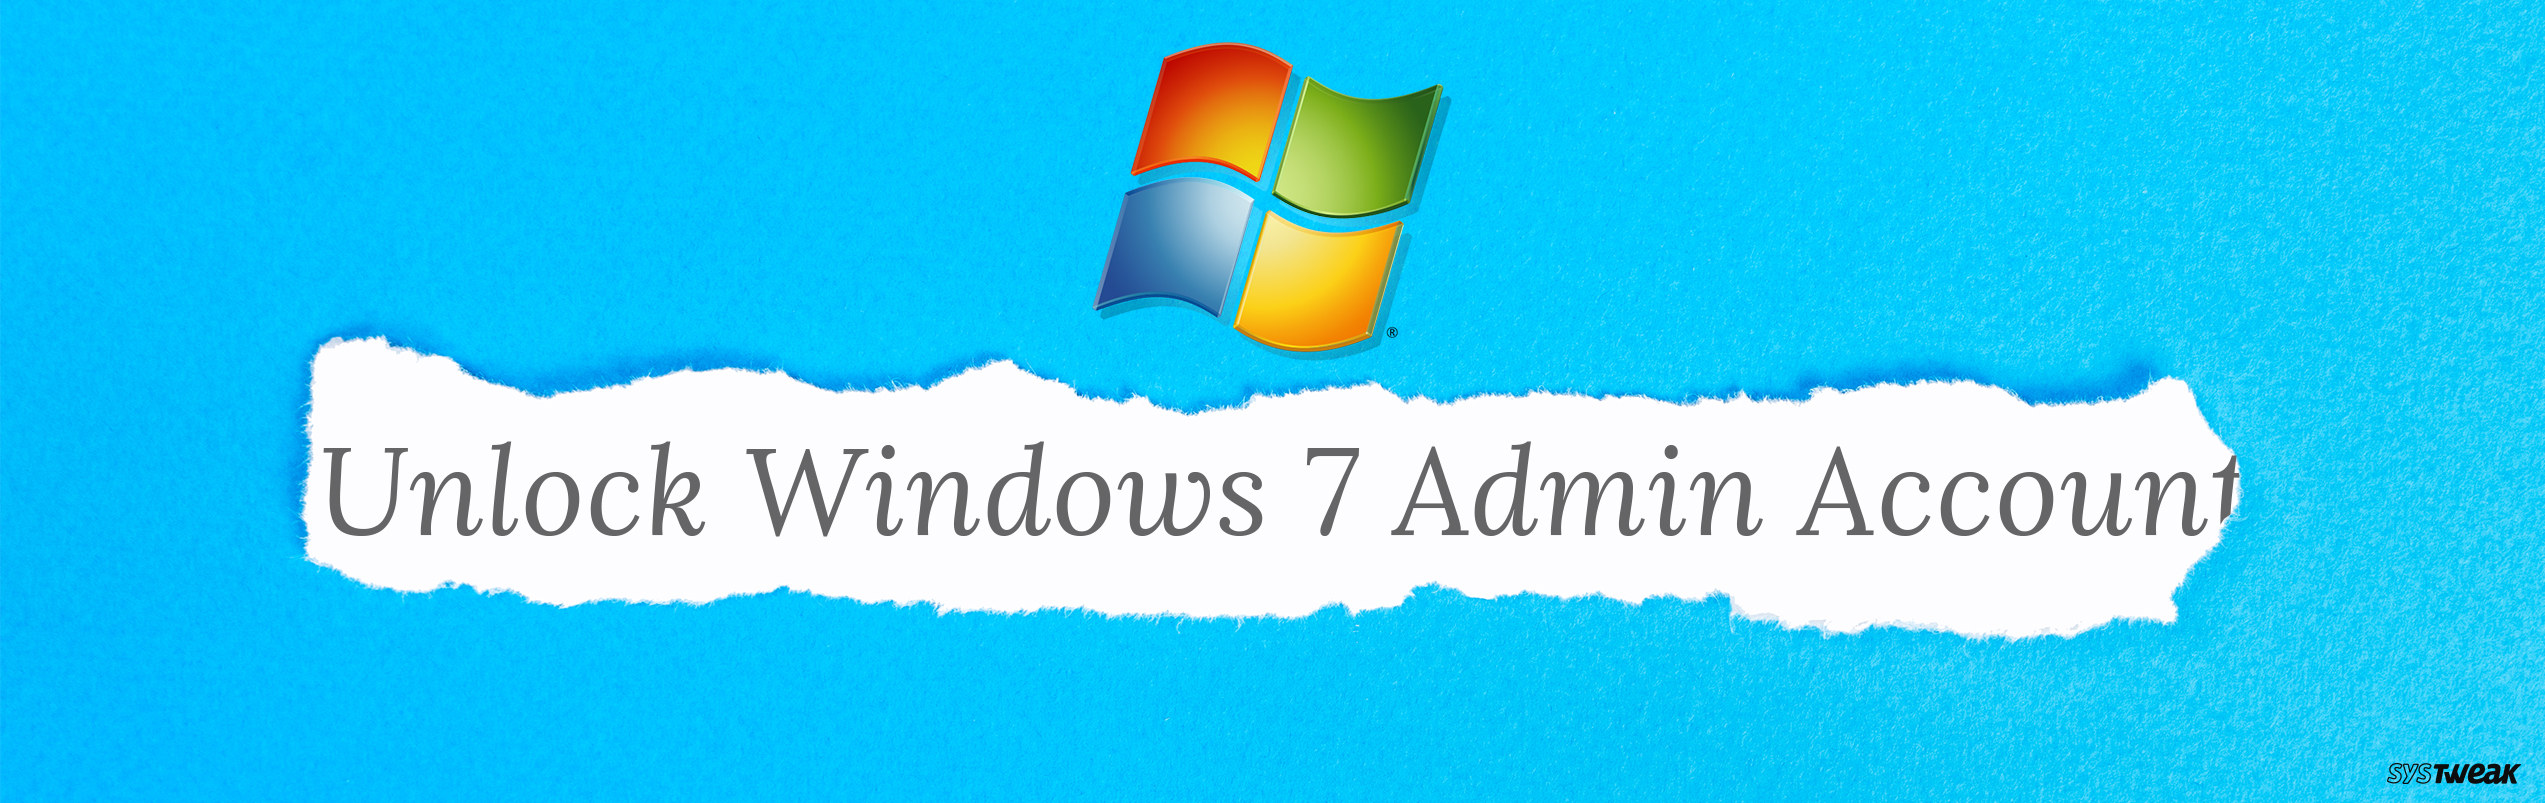 What To Do When Locked Out Of Windows 7 Administrator Account